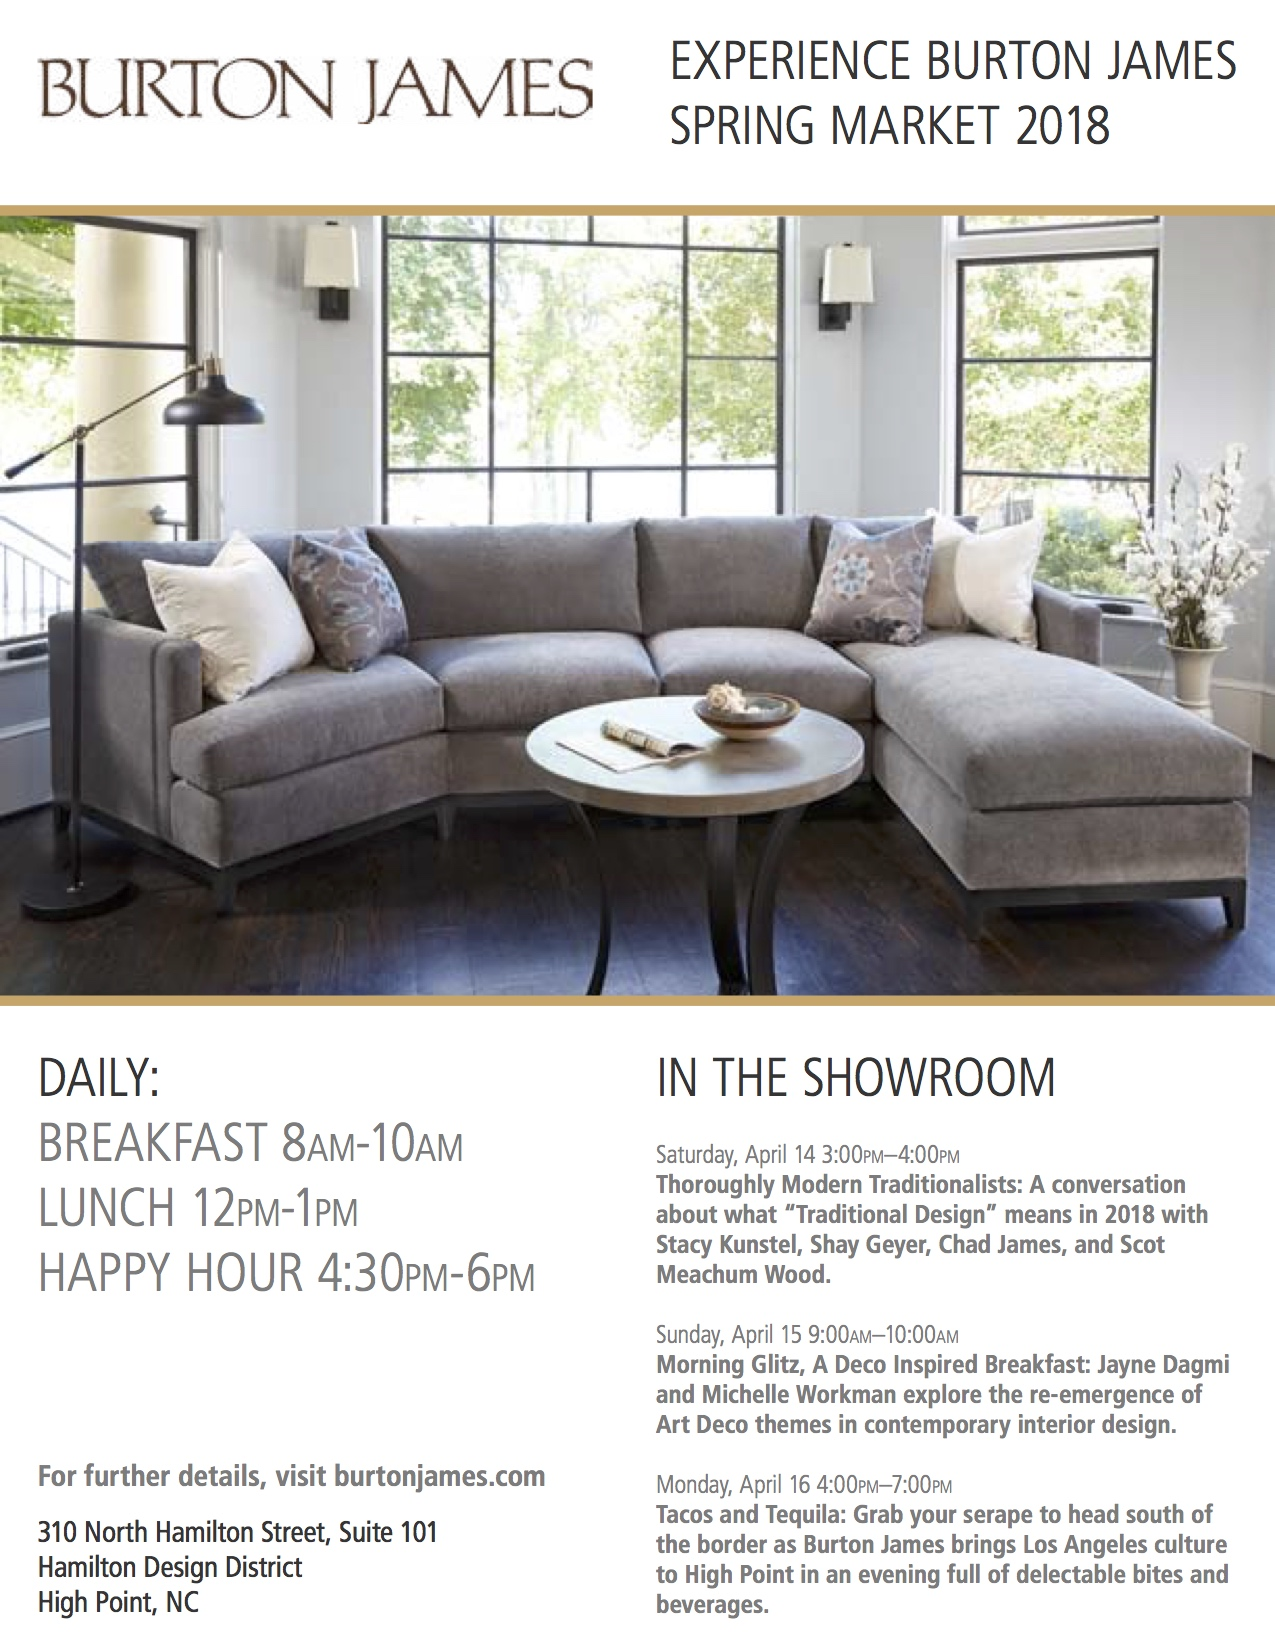 High Point Ready: Our Showroom Schedule. By Burton James